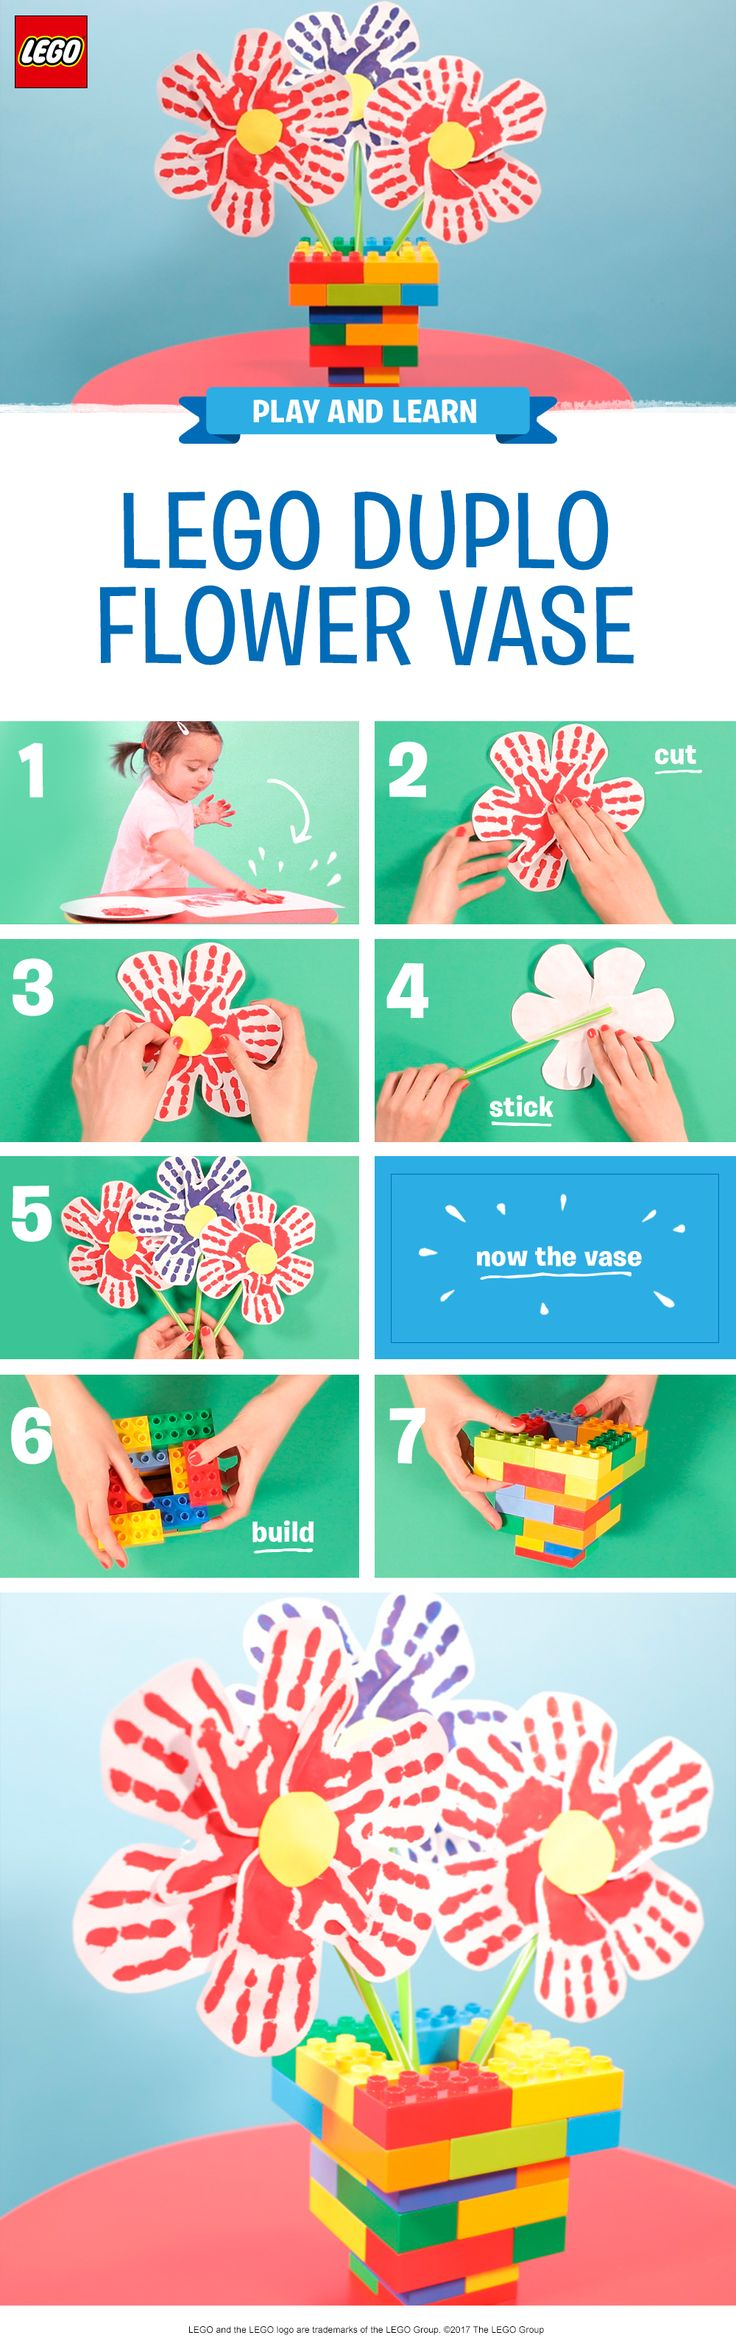 Whether it's in celebration of Mother's Day, Father's Day, or just surviving another Monday - this DIY gift has the ultimate personal touch! Use a selection of child-safe colored paints and help your child make some handprints on paper, then carefully cut them out, attach to straws in a flower shape, then build a colorful vase together using LEGO DUPLO bricks. The final step is arranging your handprint flowers in the vase and presenting to the lucky recipient! http://lego.build/duplovase